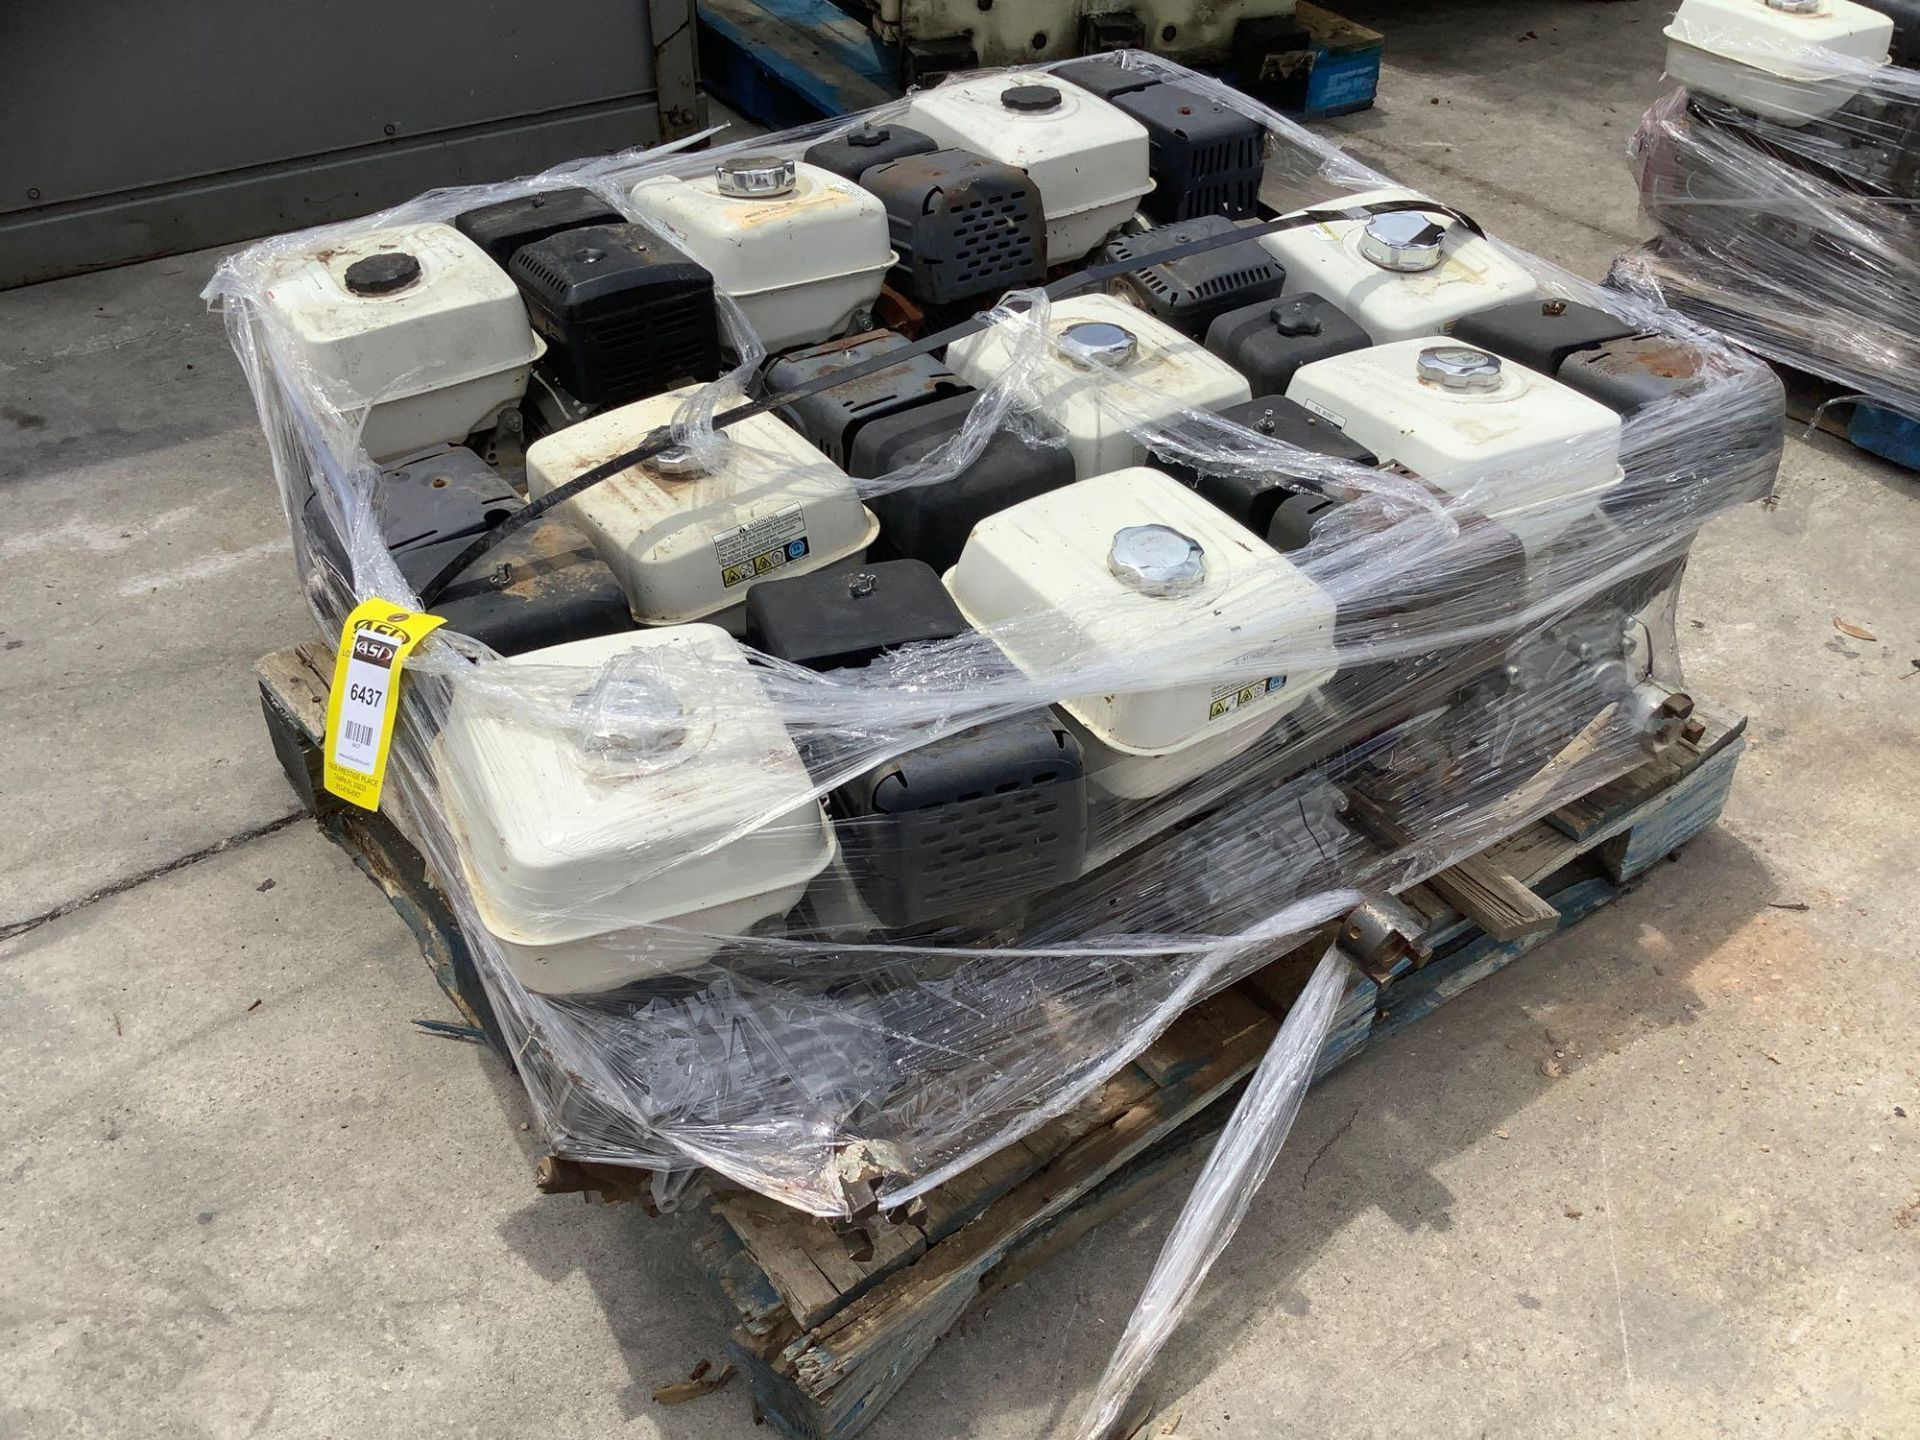 PALLET OF GAS HONDA GX 240 ENGINE , 8 HP, REMOVED FROM WORK SITE DOES RUN ALTHOUGH UNABLE TO GUARANT